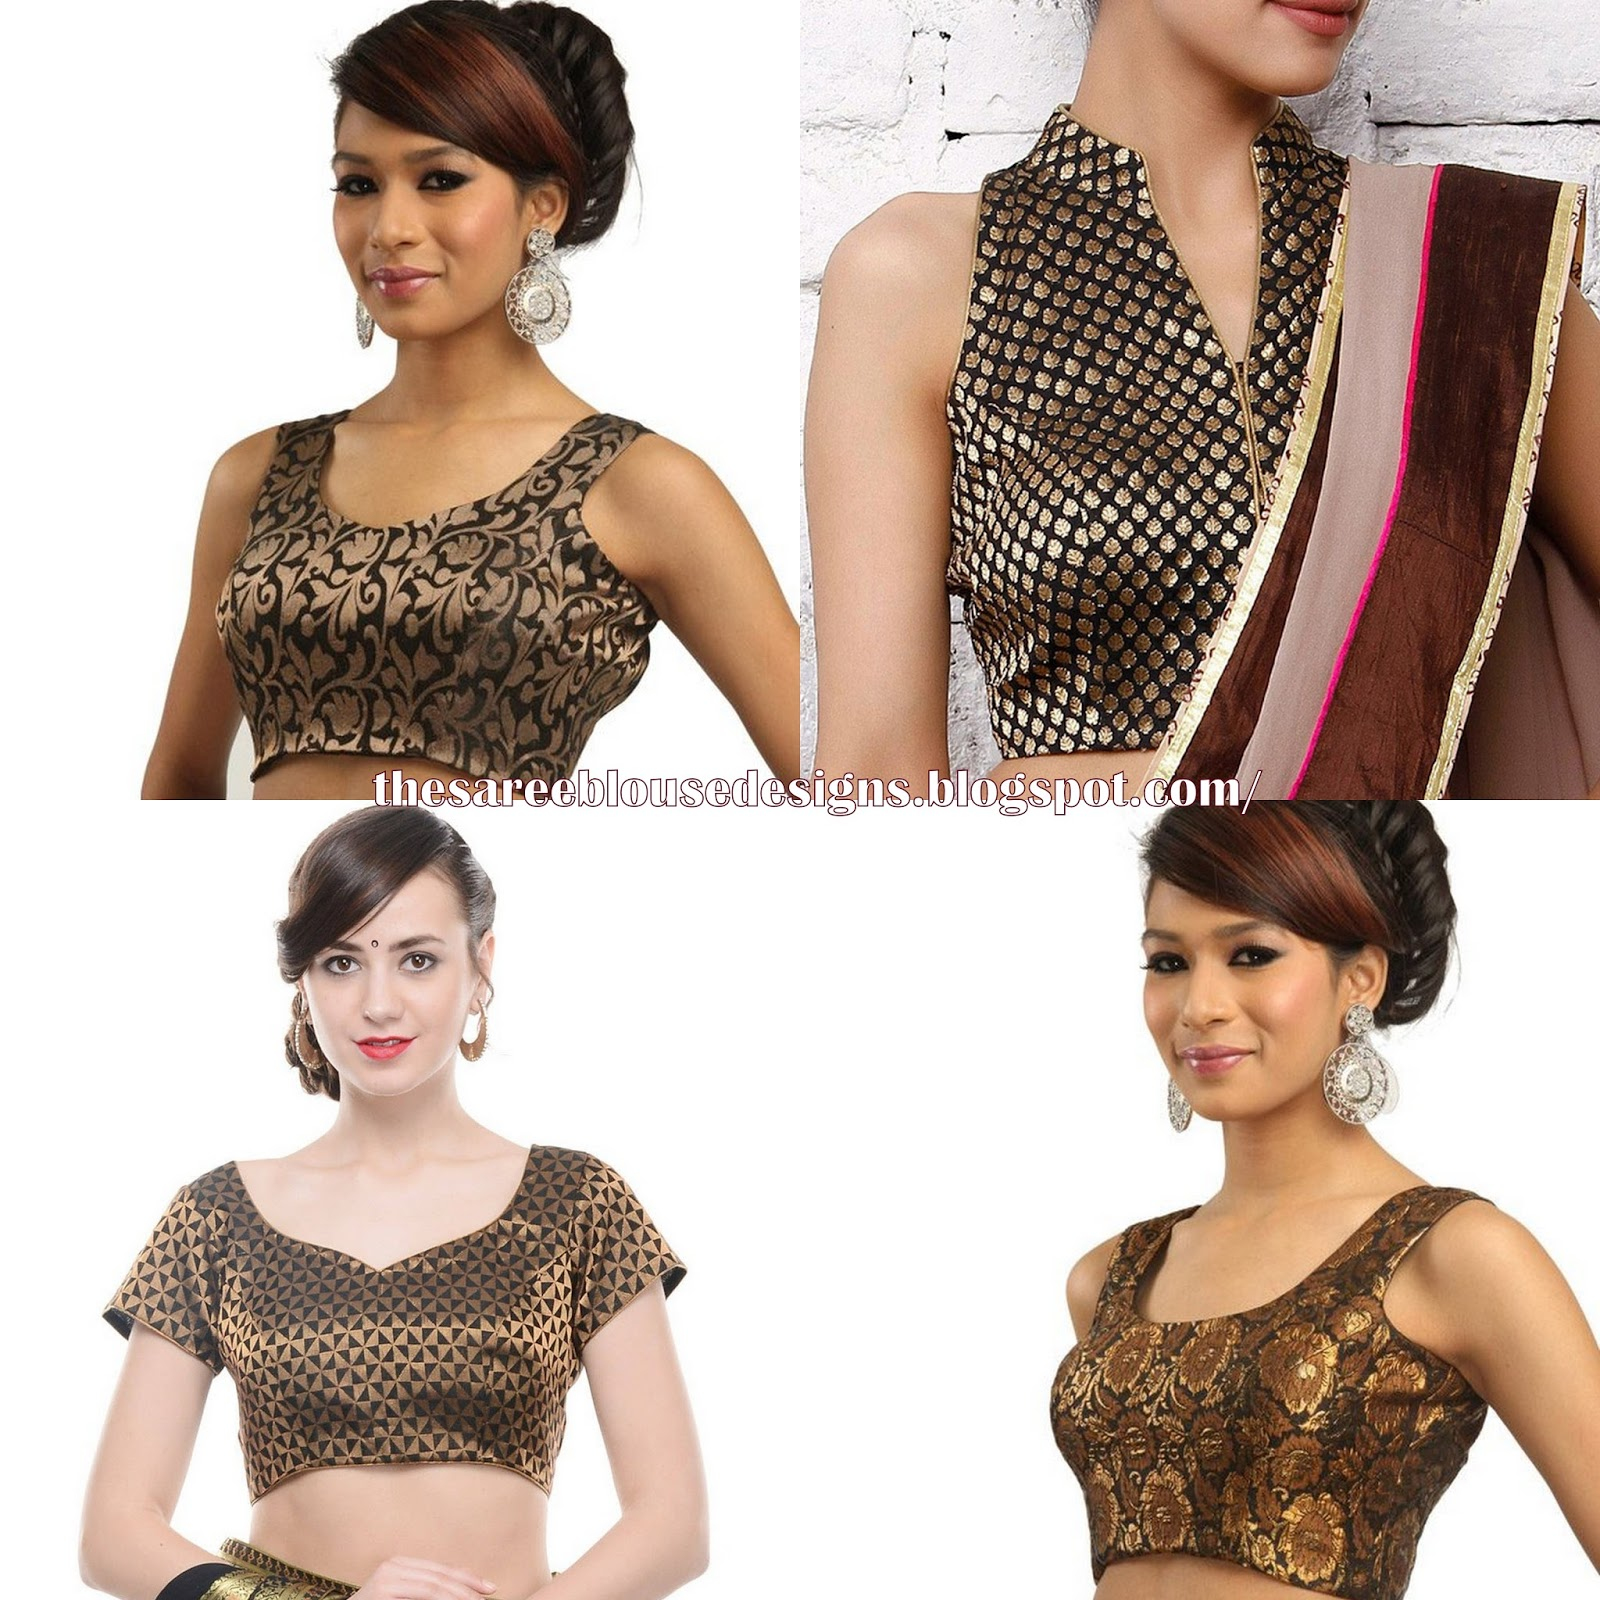 Saree Blouse Designs: 5 Must Have Saree Blouse Designs for ...